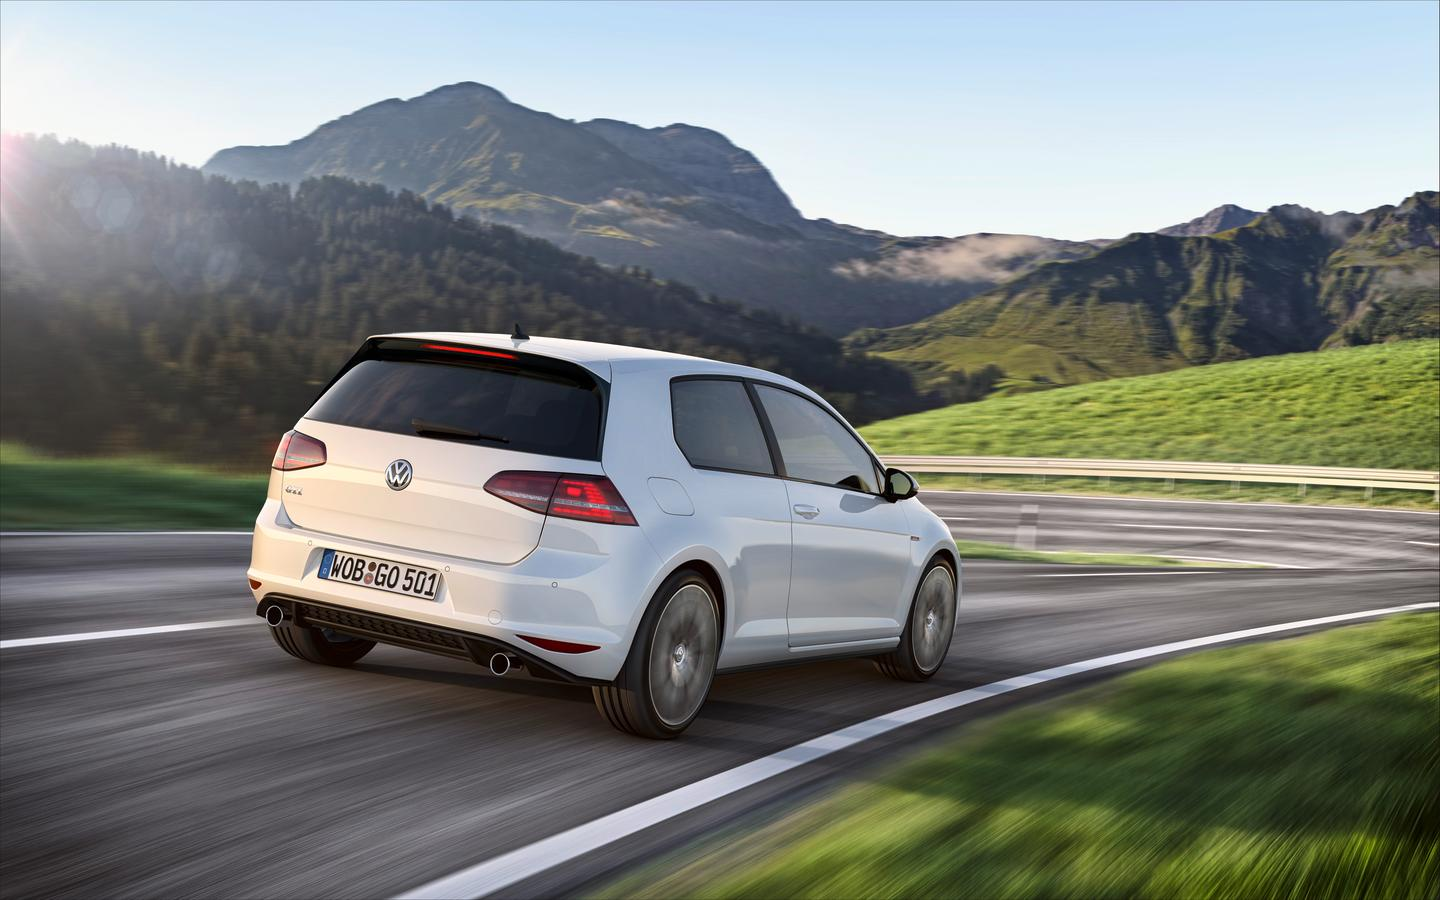 The Golf GTI comes in two versions